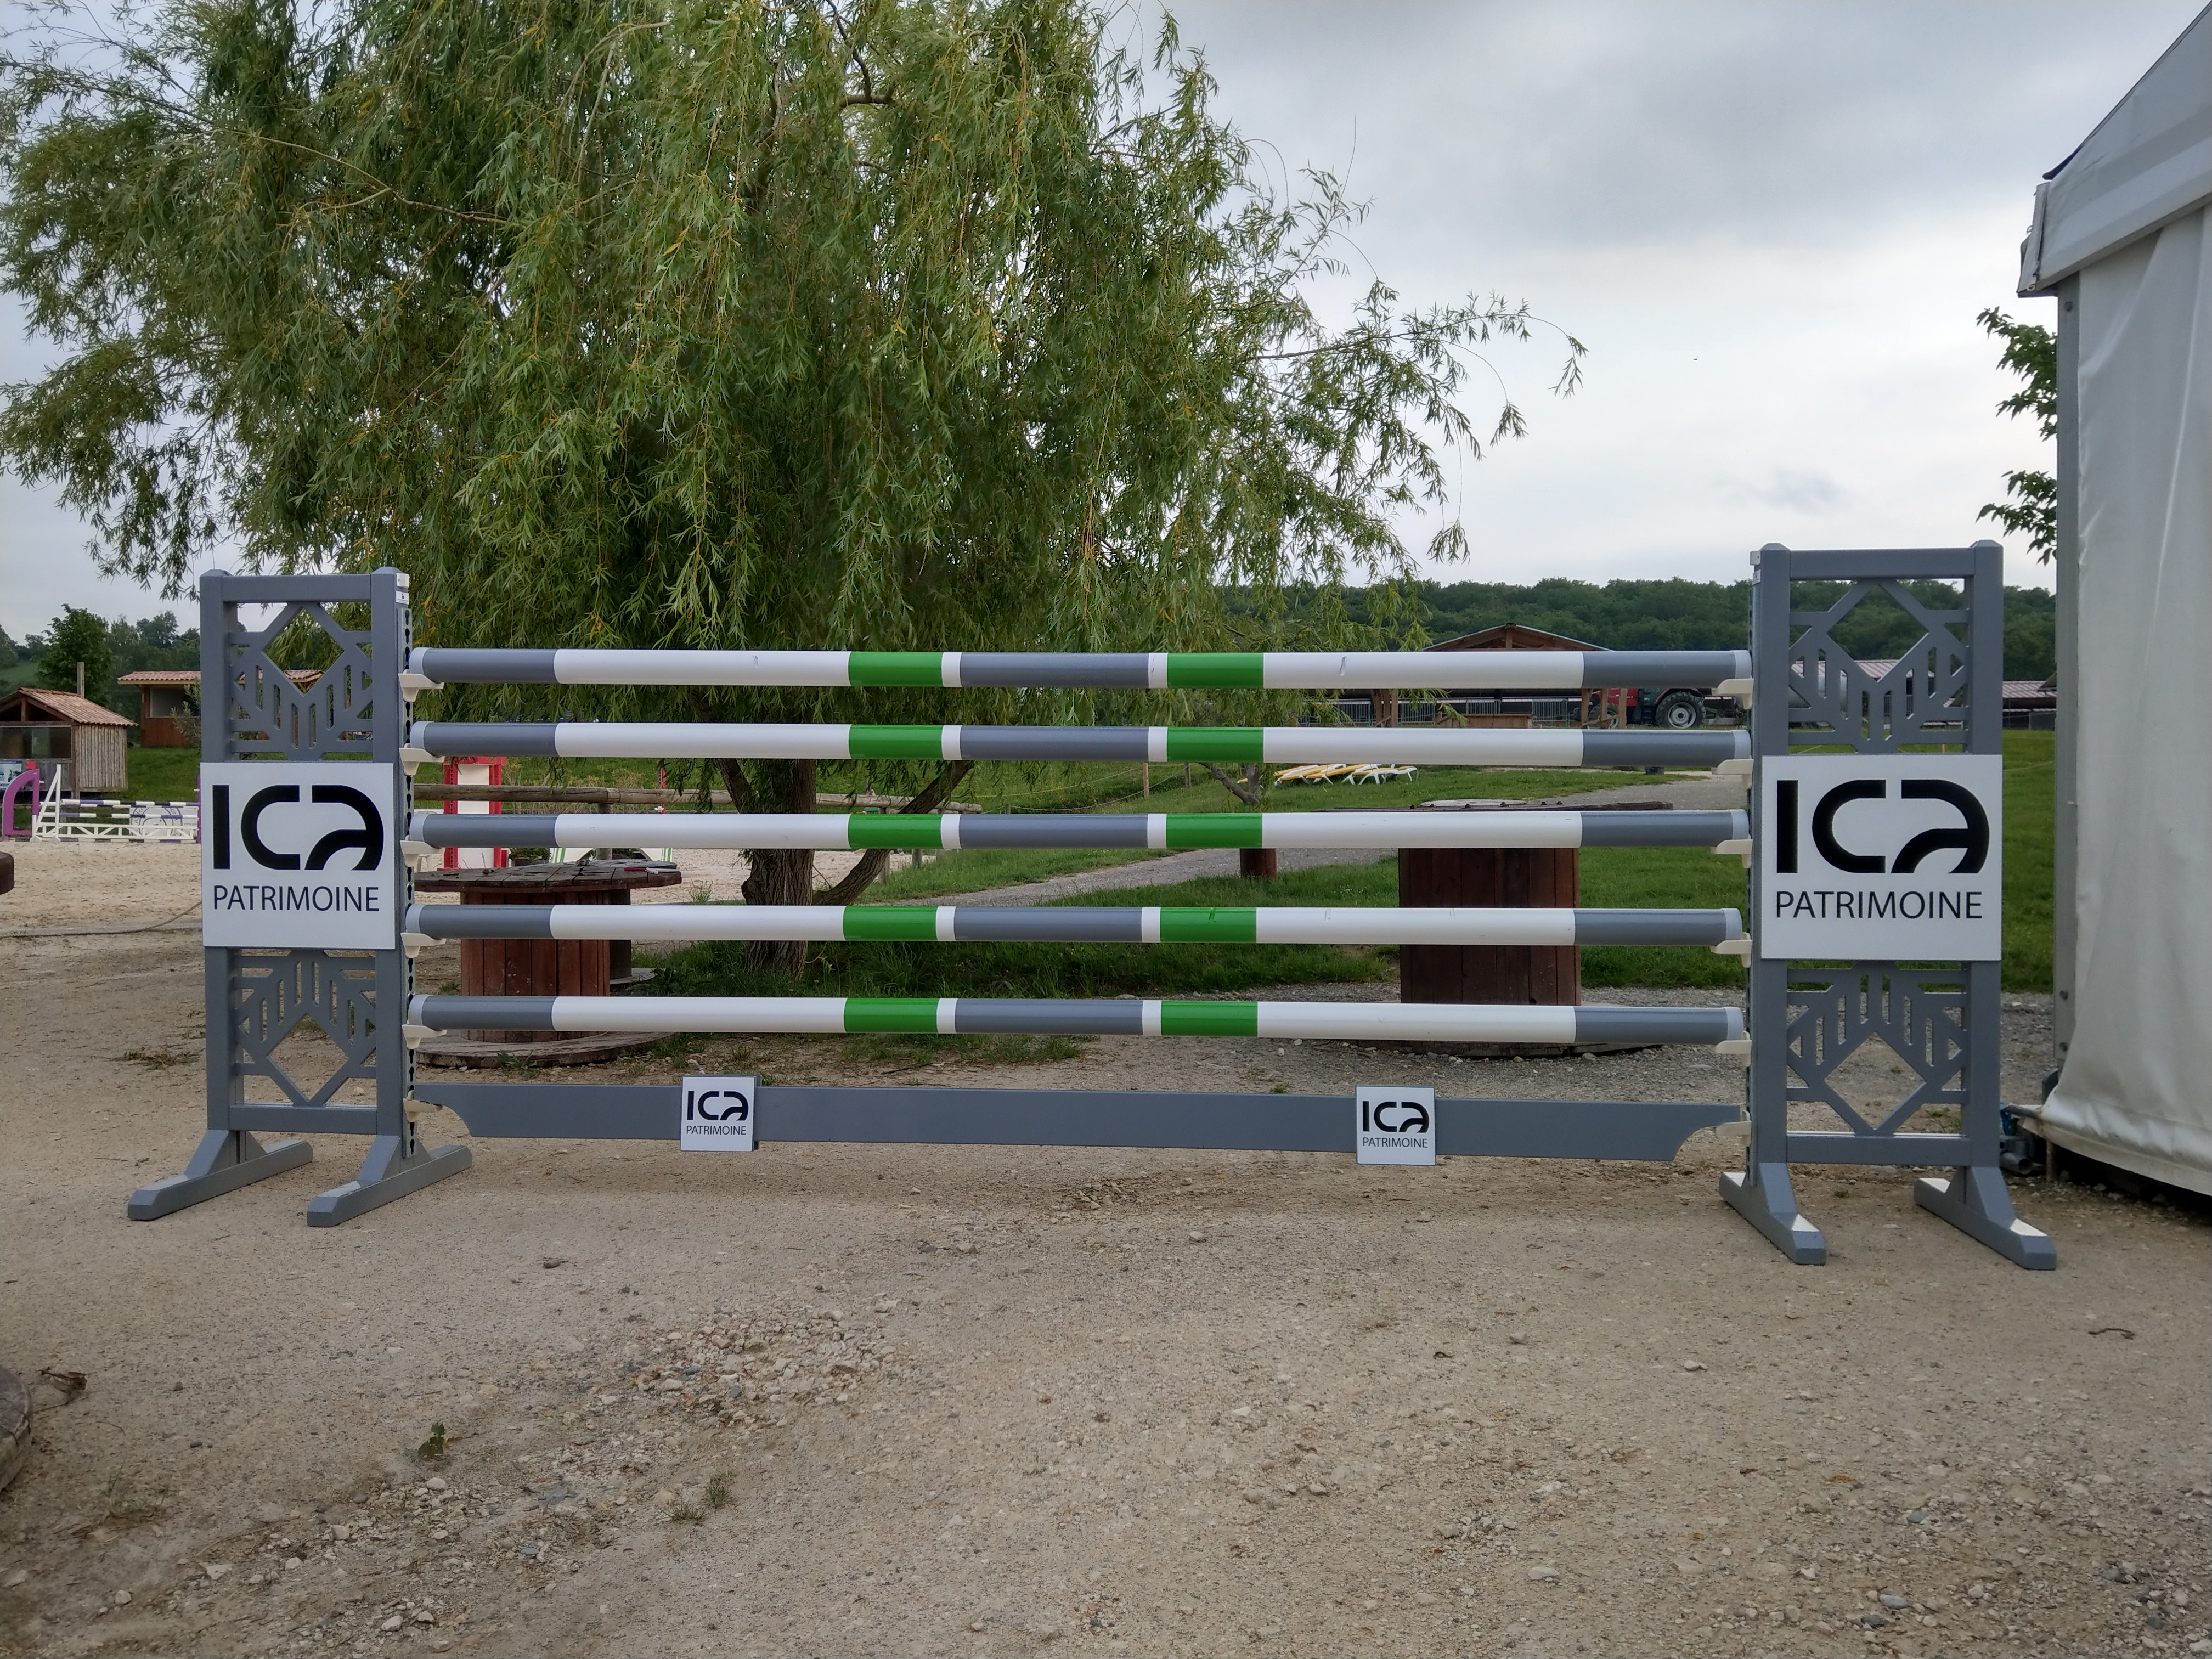 Obstacle ICA Patrimoine